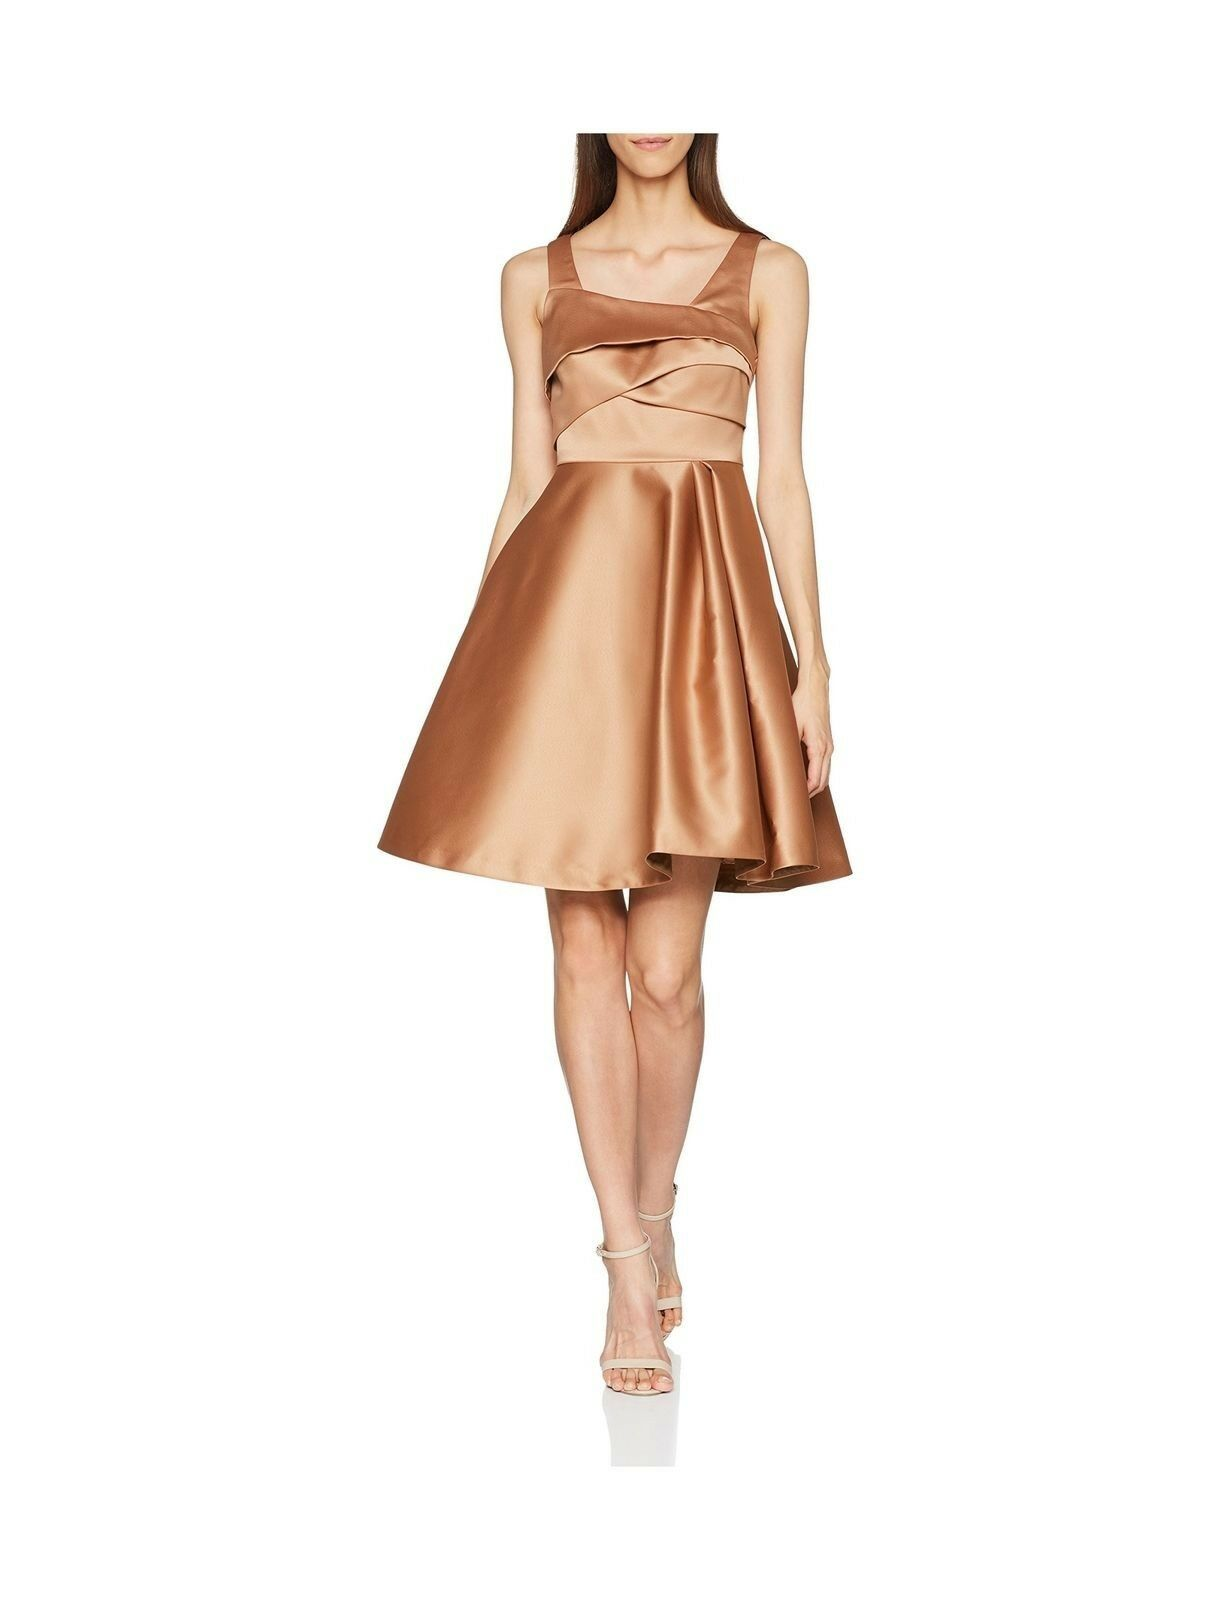 COAST AMORE CARAMEL SATIN EVENING SPECIAL OCCASION PARTY DRESS SIZE 12 BNWT